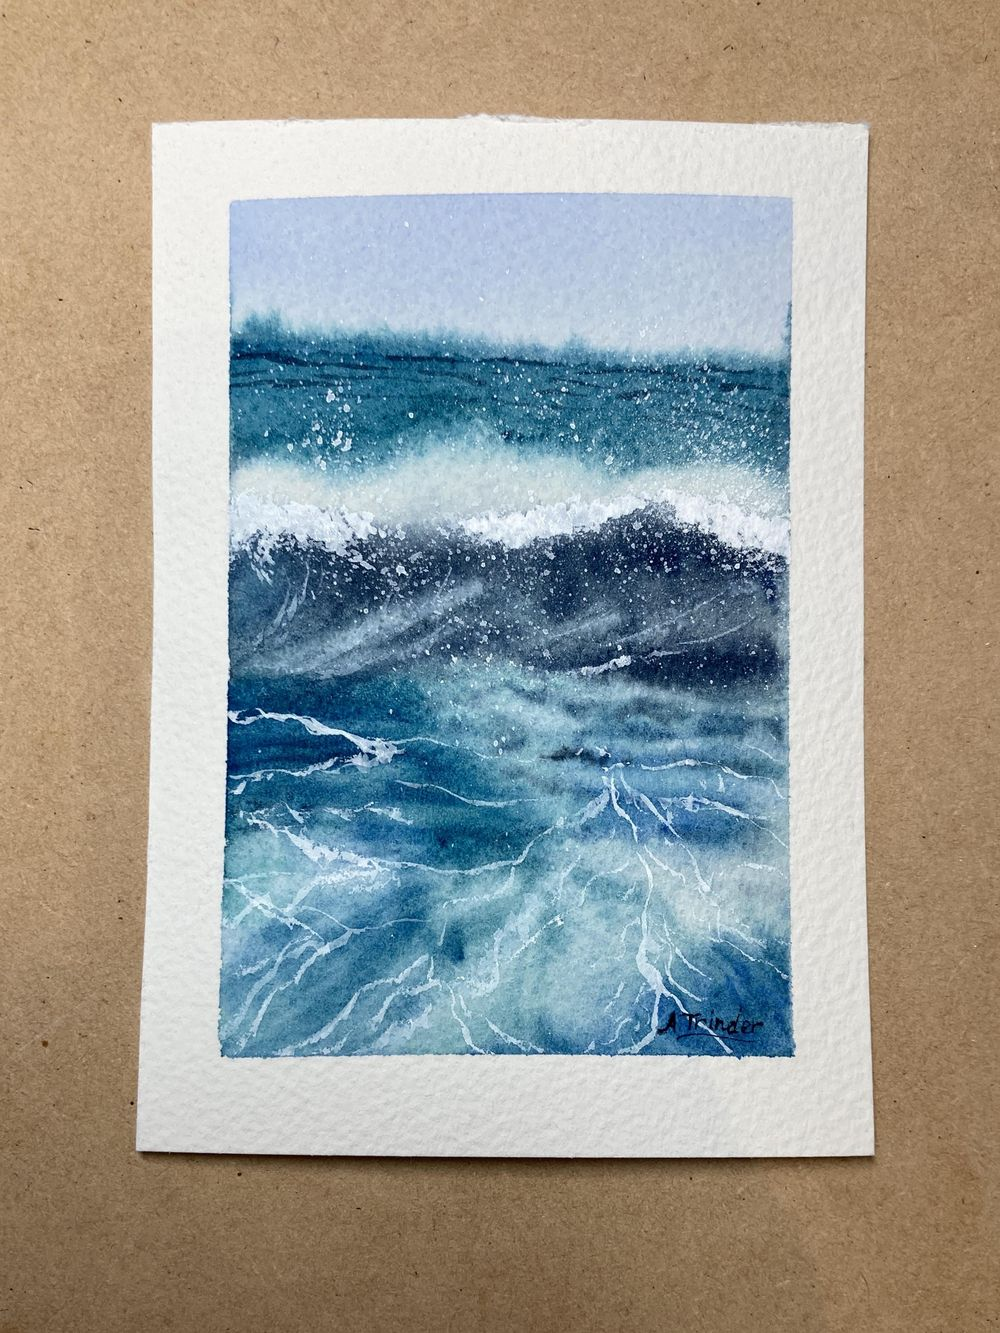 Waves - image 2 - student project